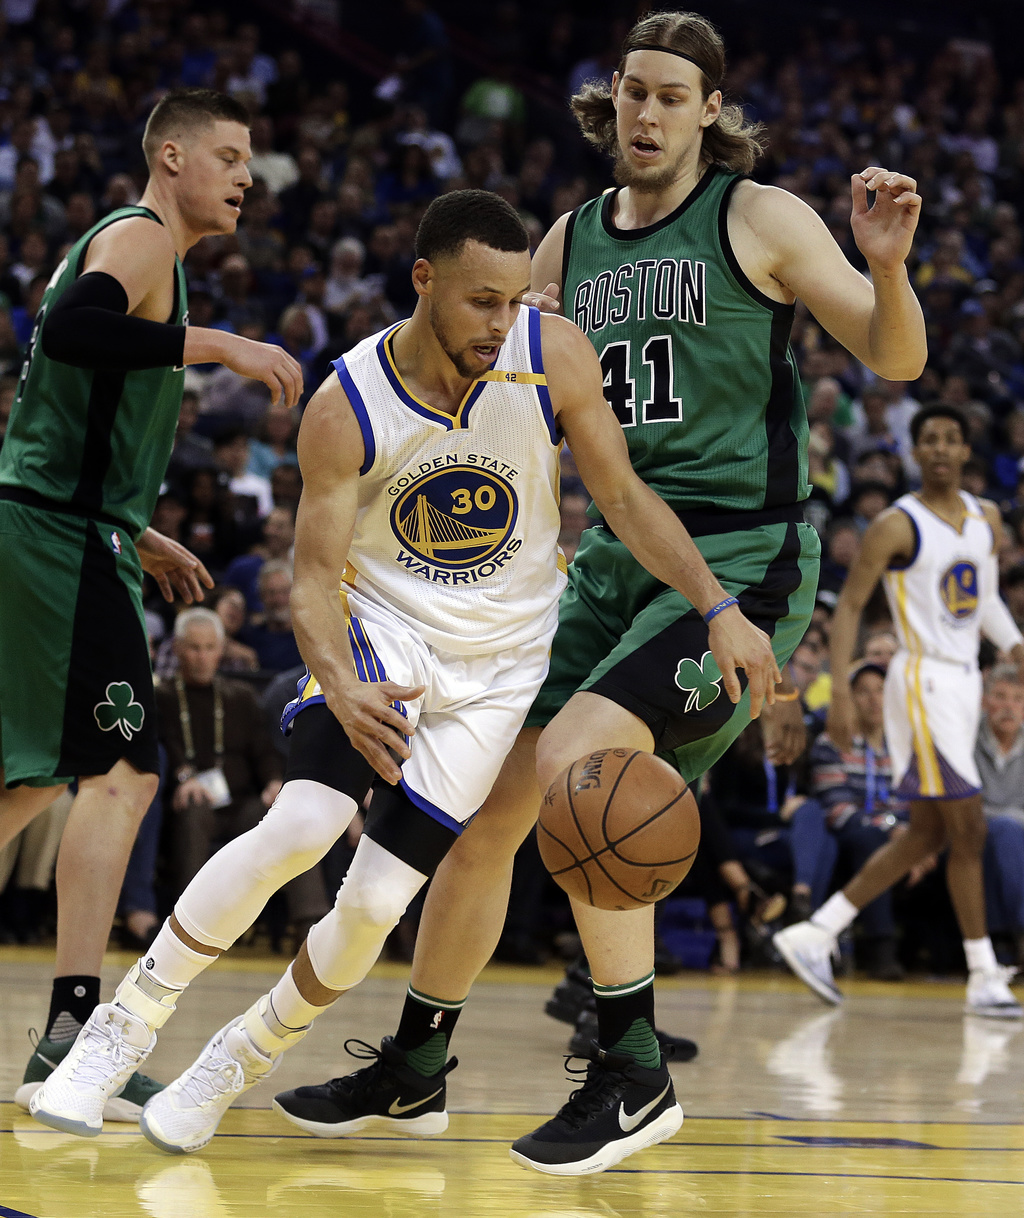 Golden State Warriors' Stephen Curry (30) drives the ball around Boston Celtics' Kelly Olynyk, right, during the first half of an NBA b...